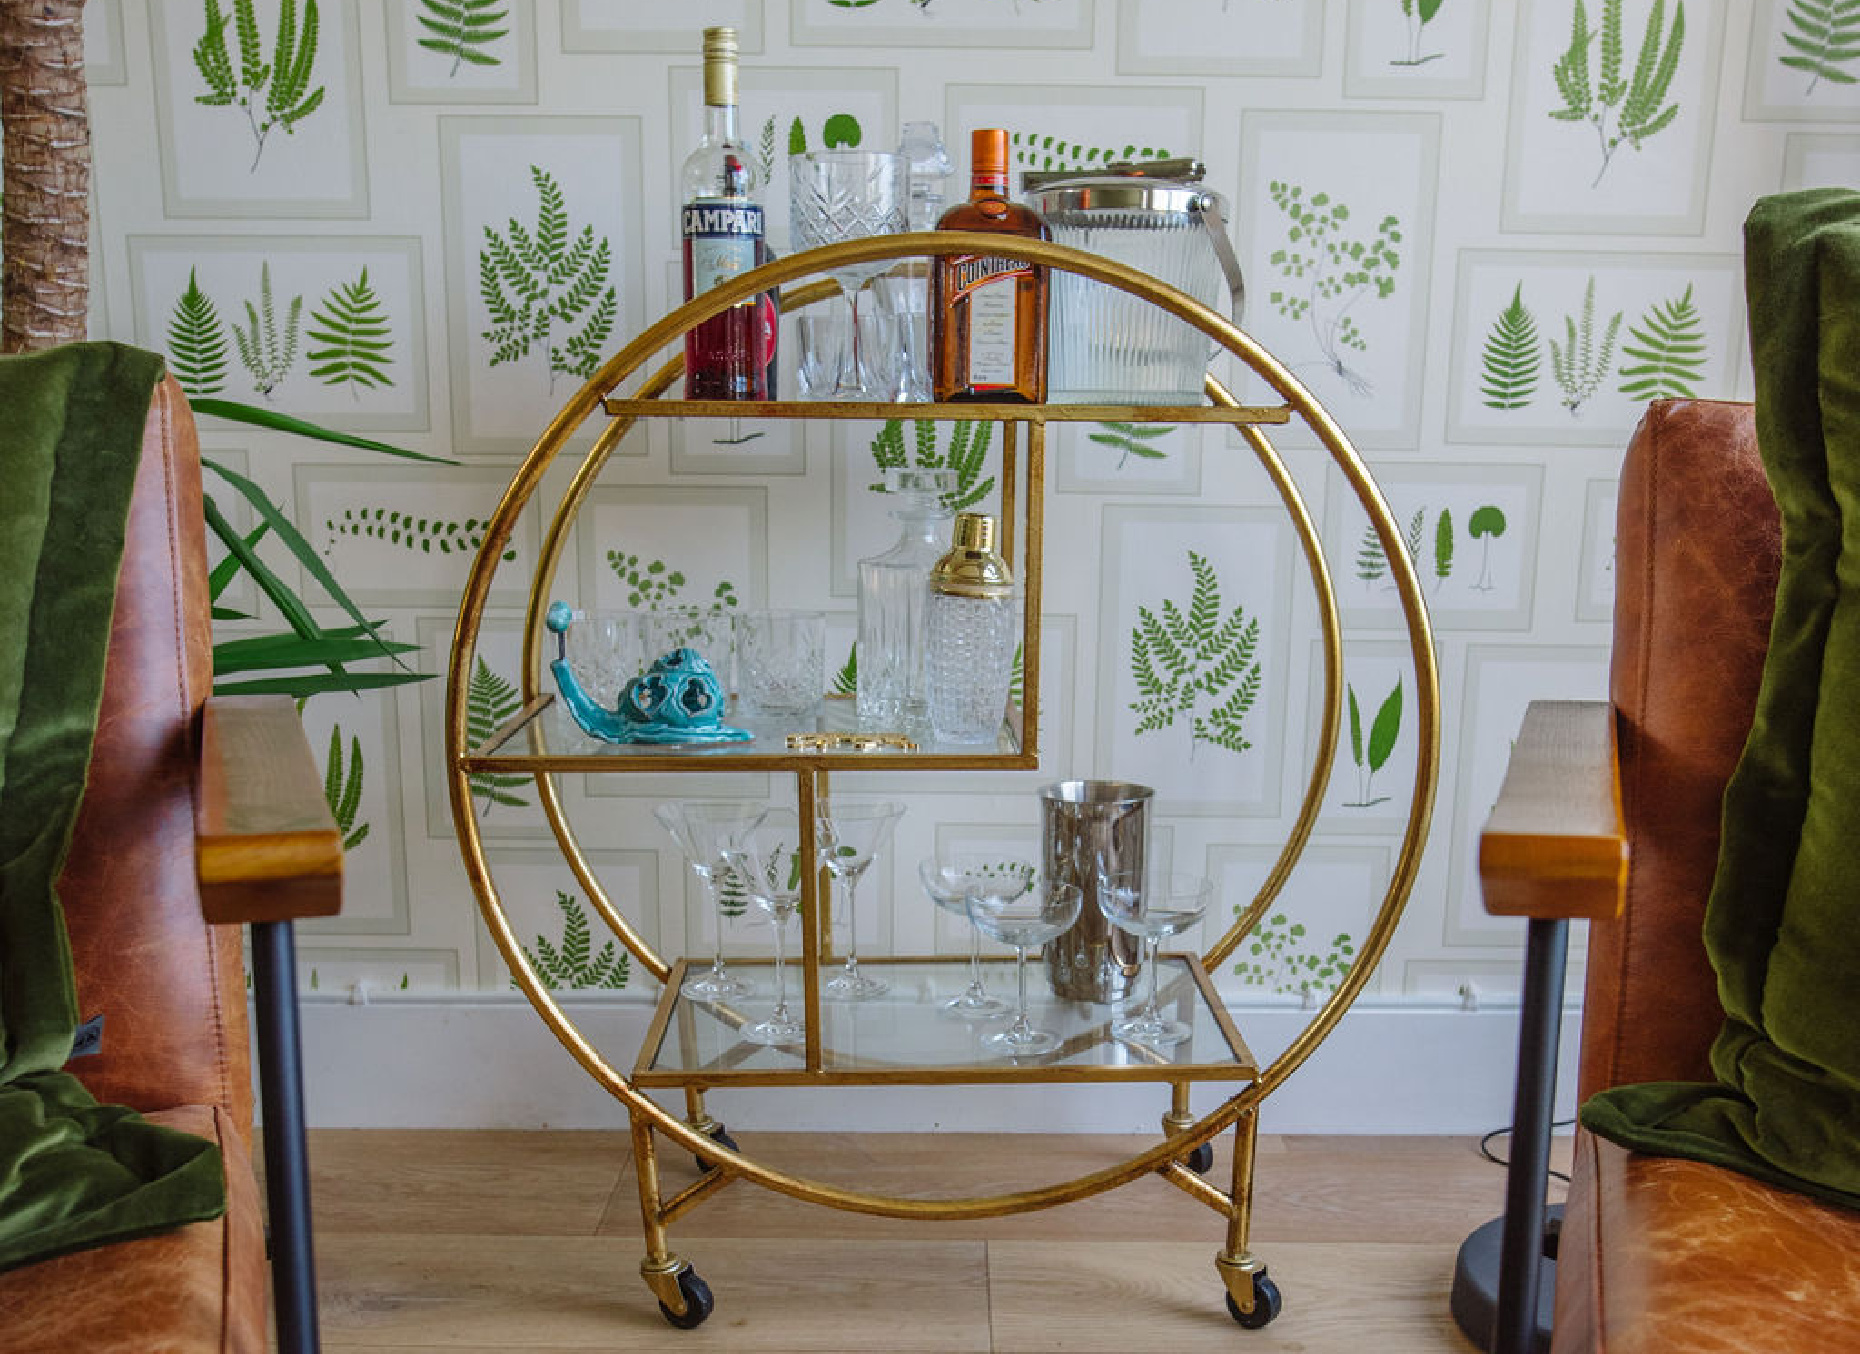 Biophilic design interior featuring gold bar cart drinks trolley and plant illustration wallpaper.